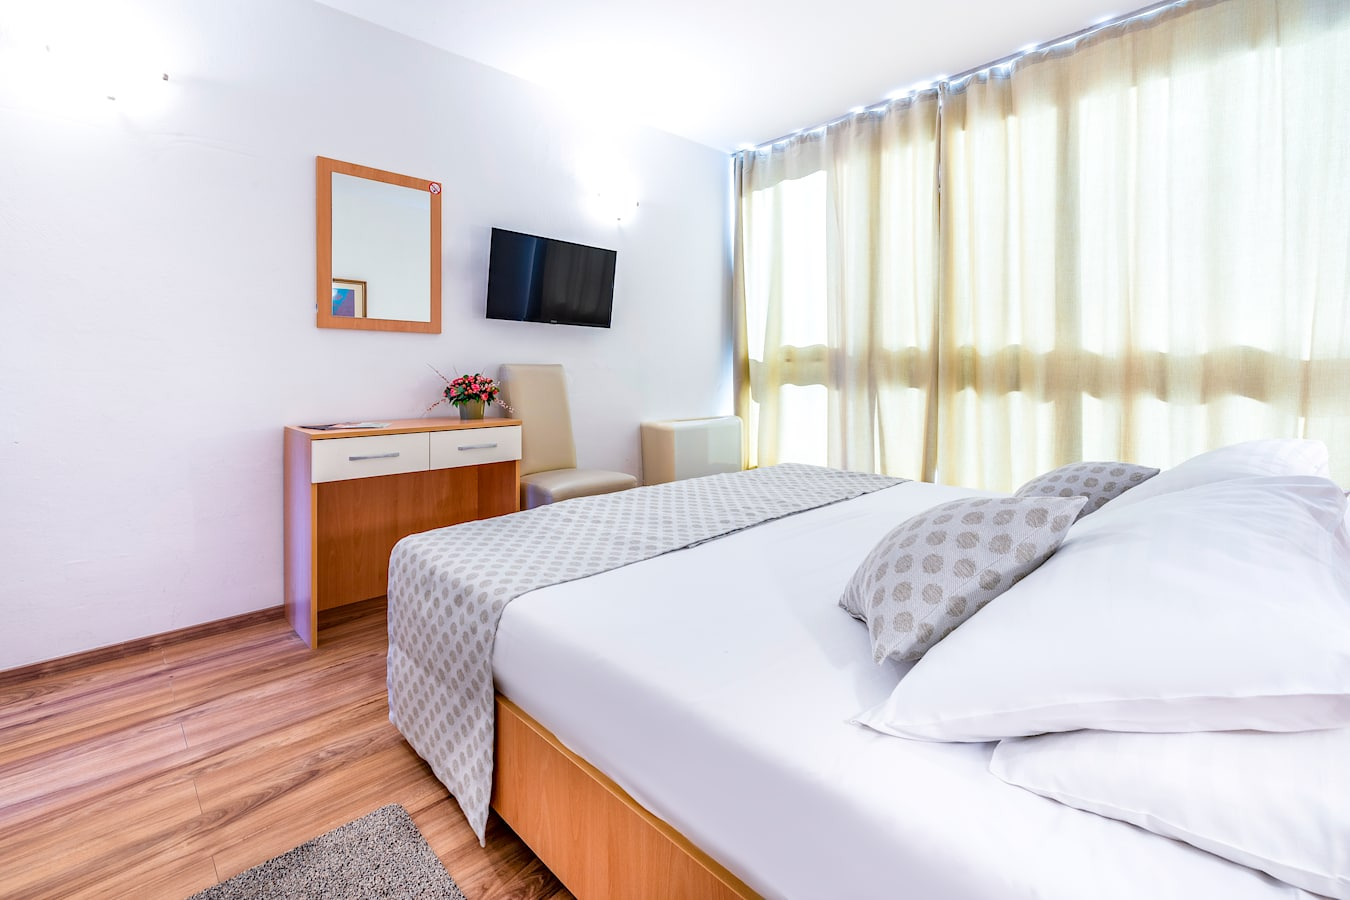 adriatic-hotel-double-room-dubrovnik.jpg